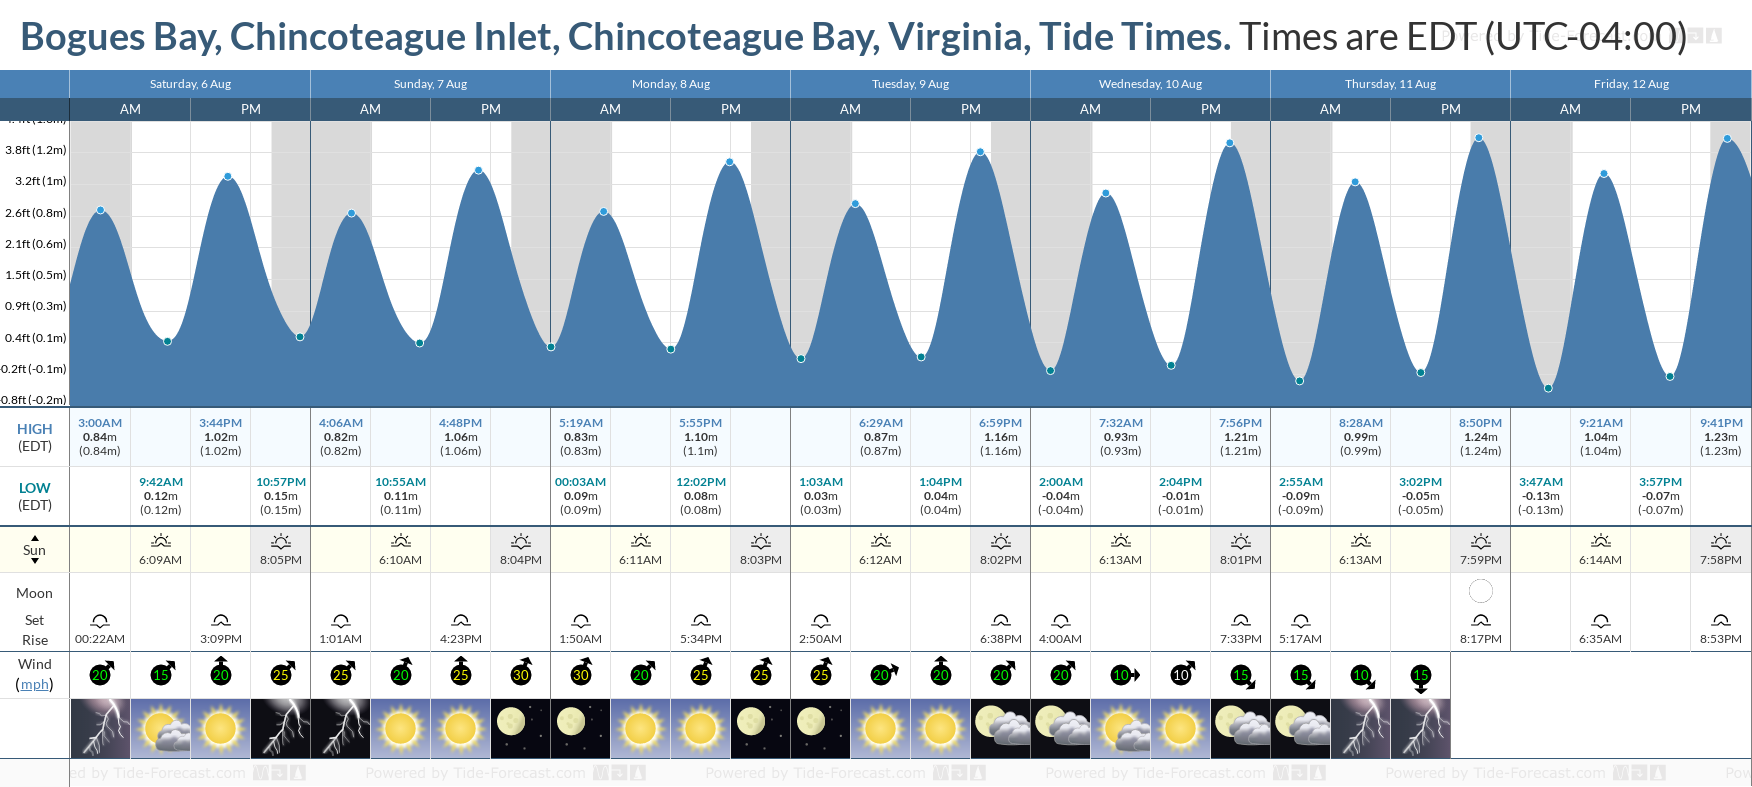 Bogues Bay, Chincoteague Inlet, Chincoteague Bay, Virginia Tide Chart including high and low tide tide times for the next 7 days